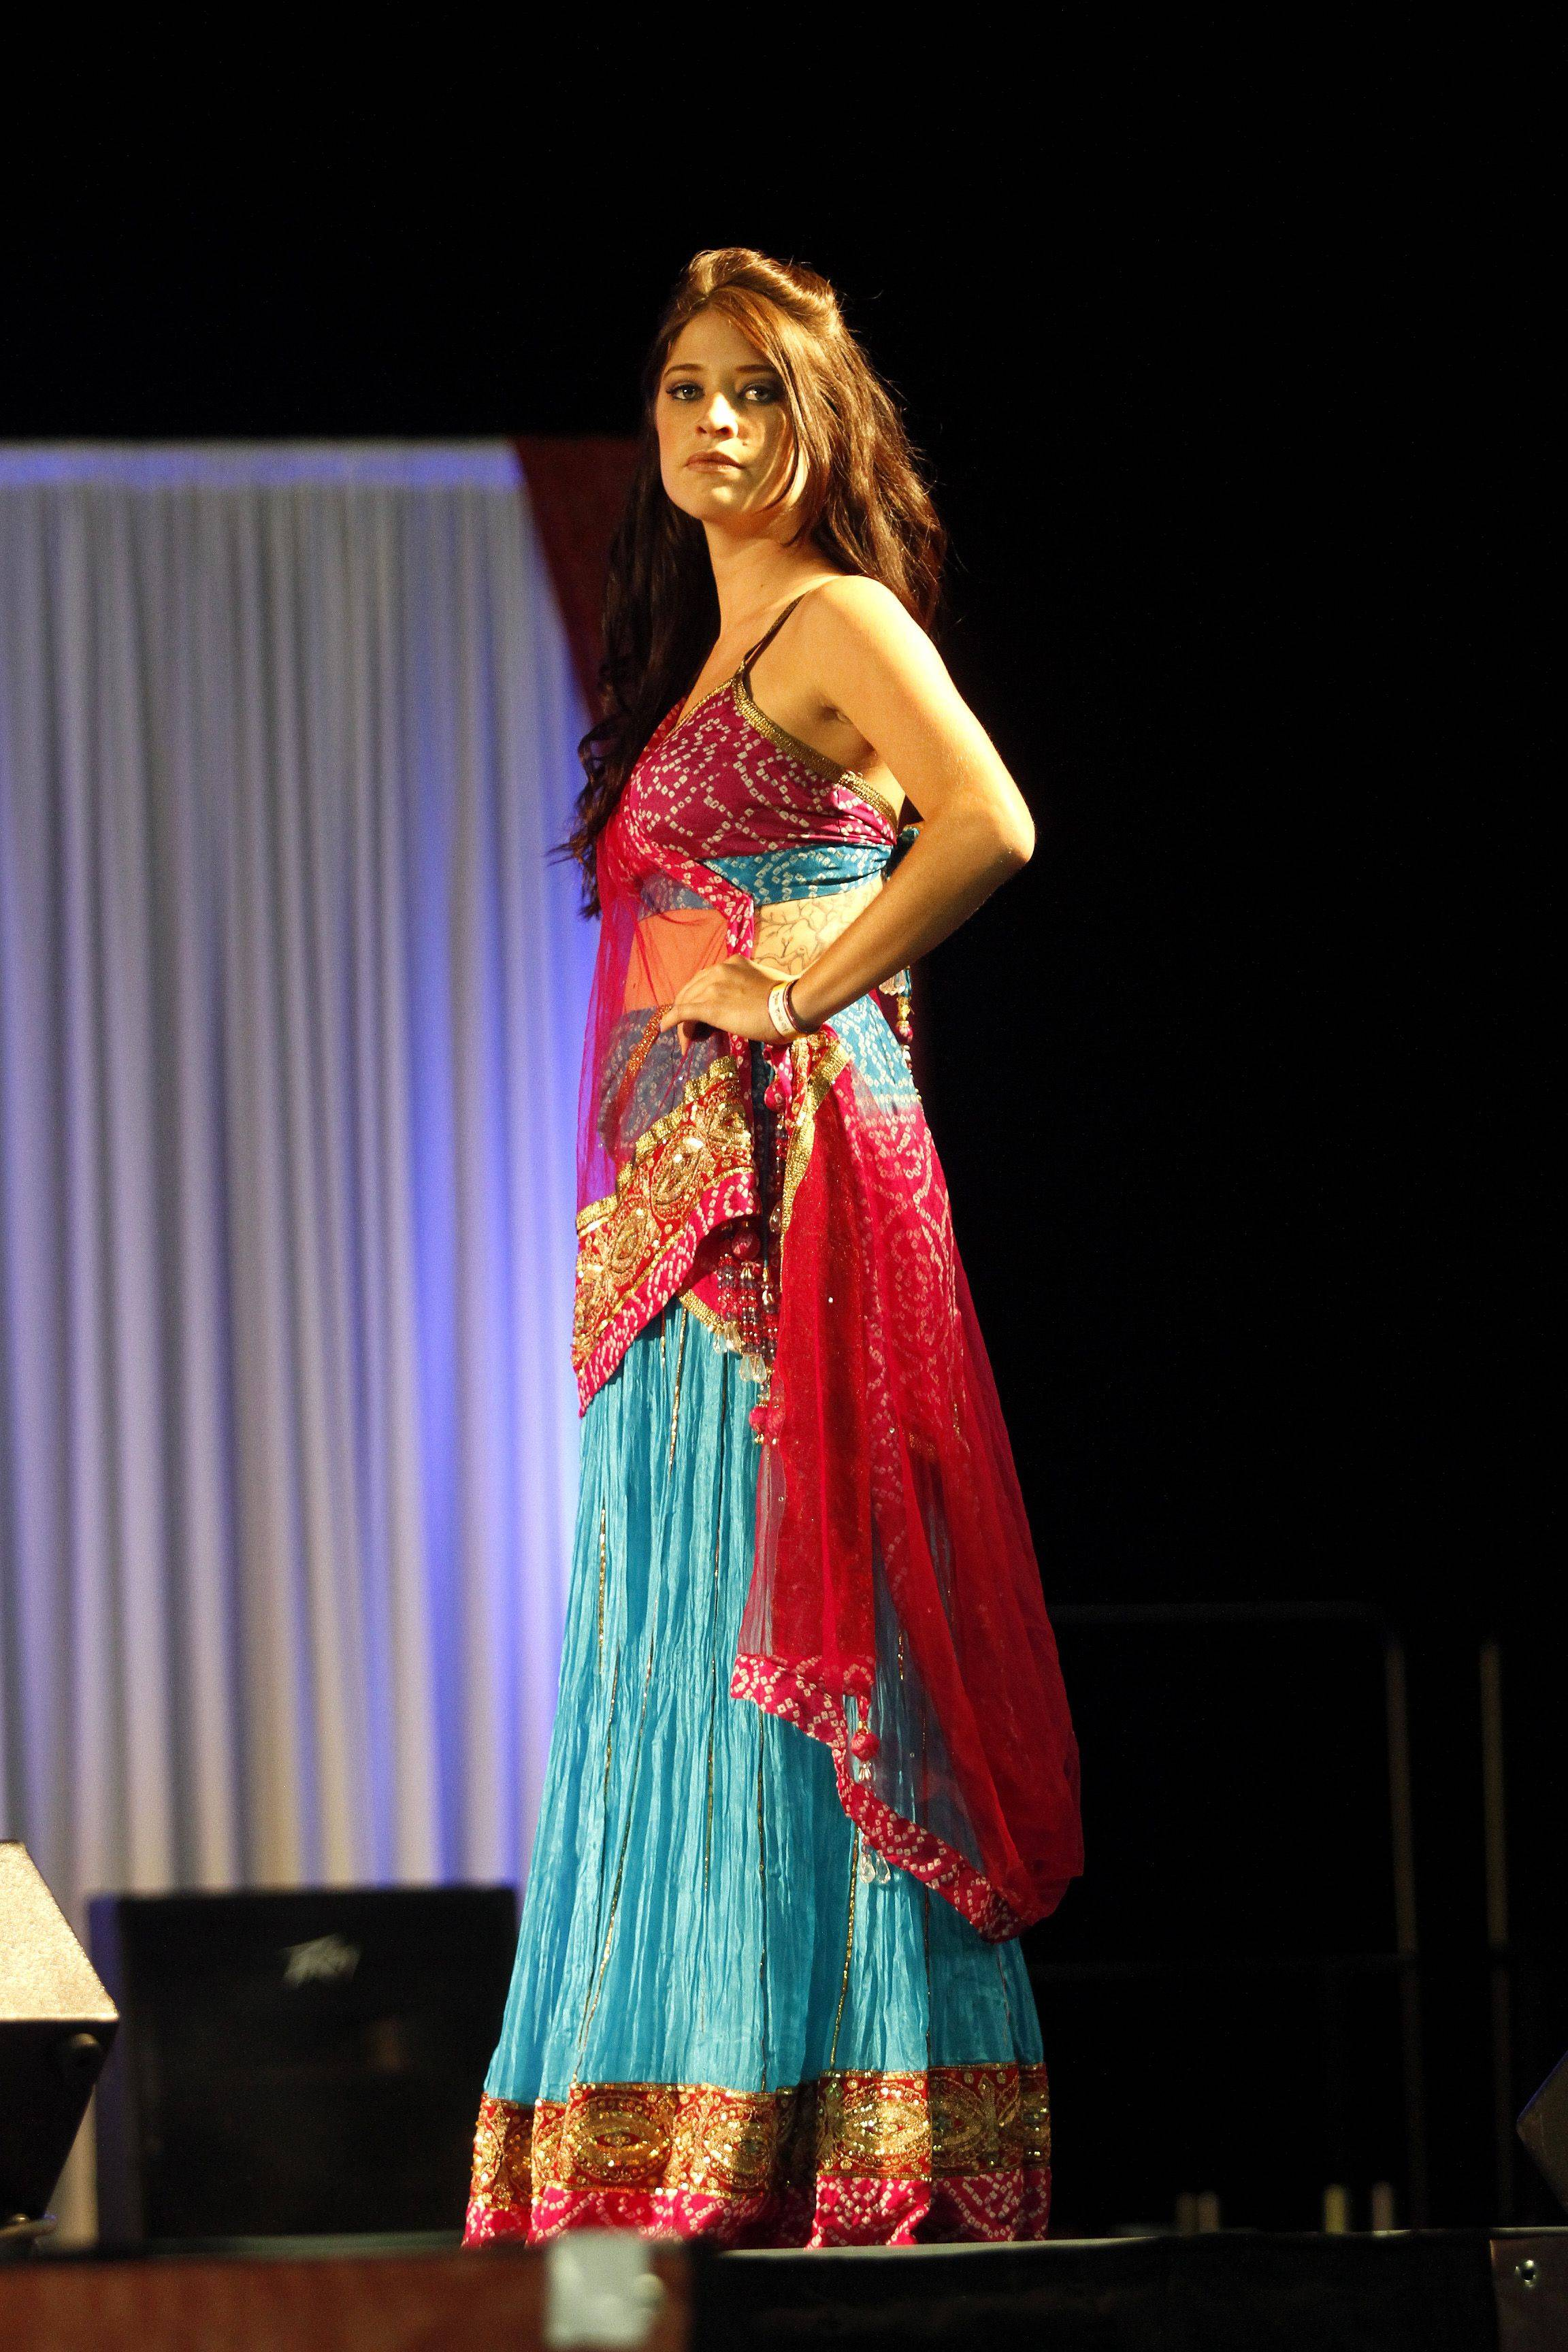 A model shows off a traditional Indian outfit during a fashion show at the Vibrant India Festival held at the Sears Center Sunday afternoon. The fest also featured music, food, and clothing and jewelry vendors.